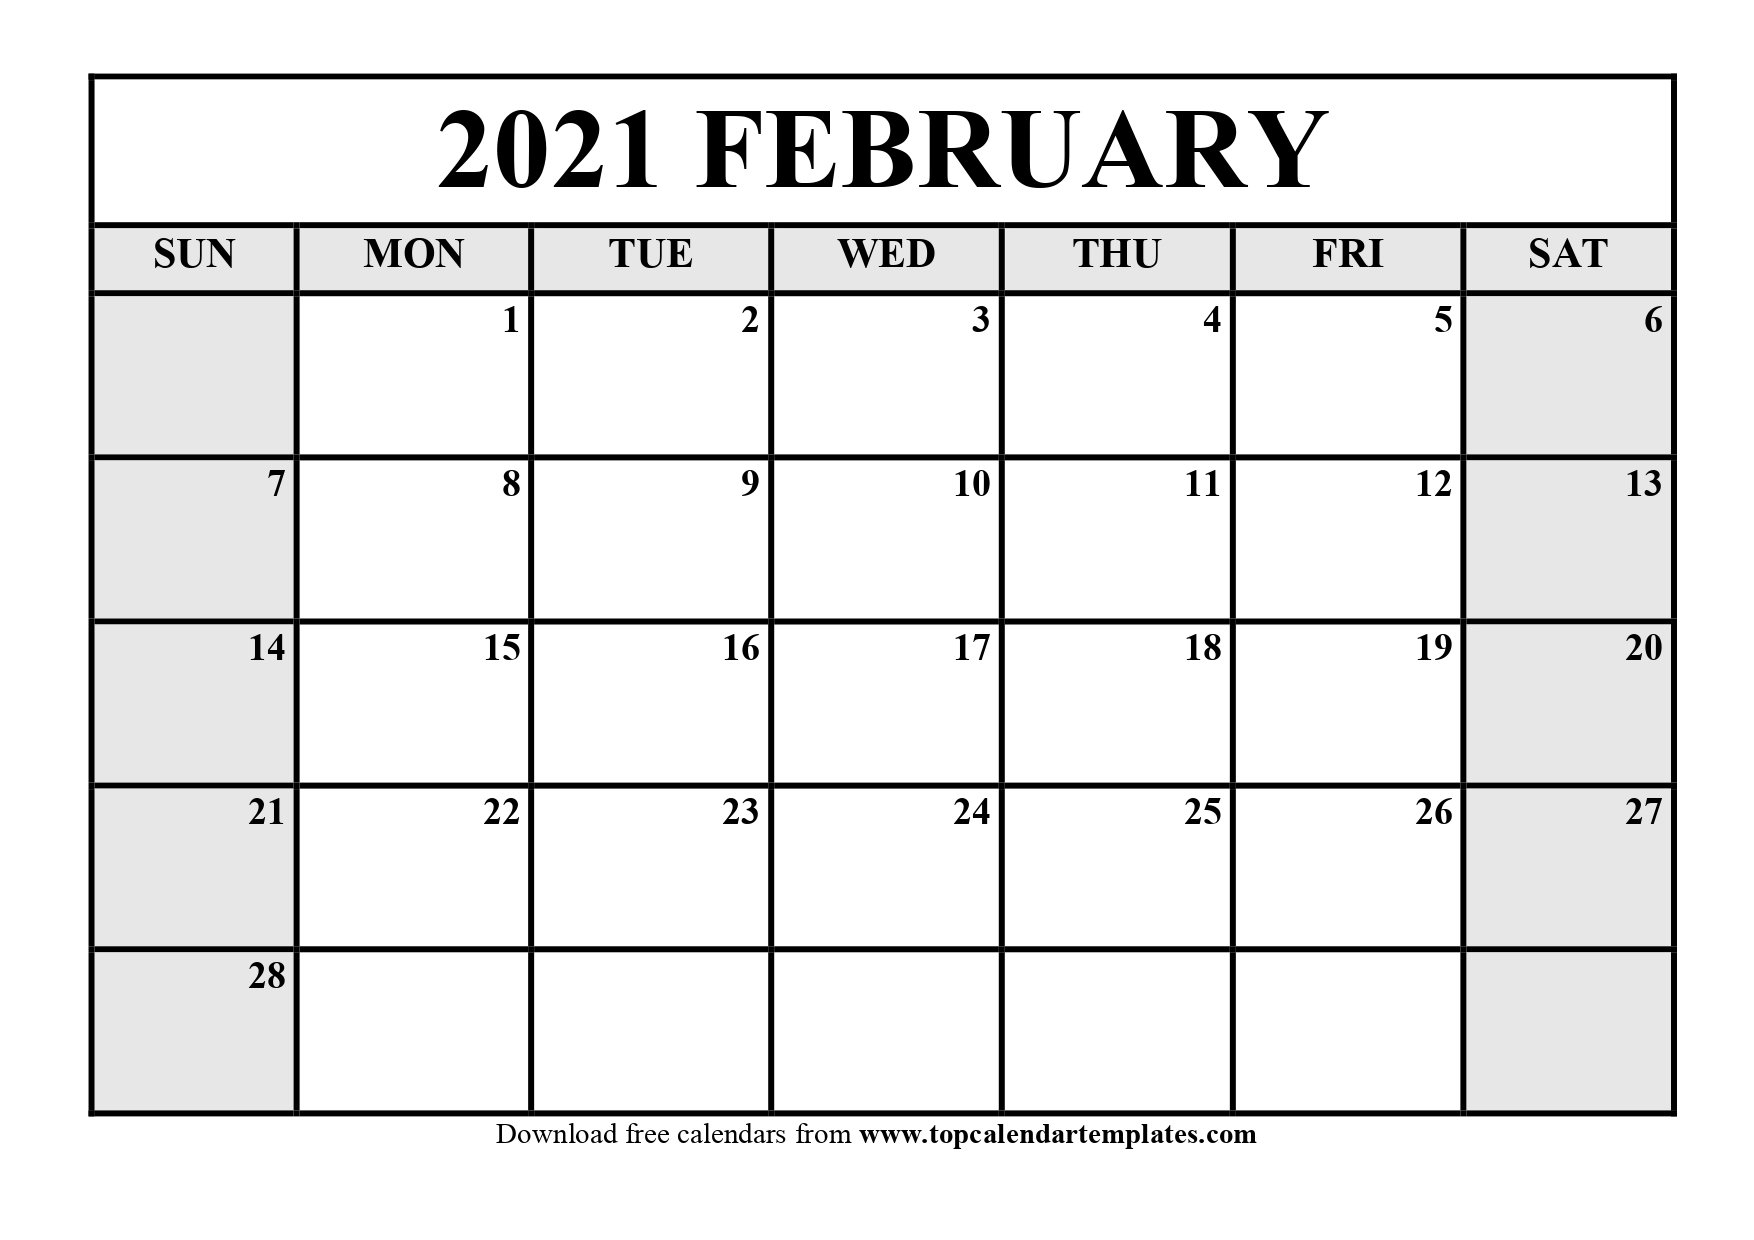 2021 Print Free Calendars Without Downloading | Calendar Printables Free Blank with regard to Free Printable Planner Pdf 2021 Image